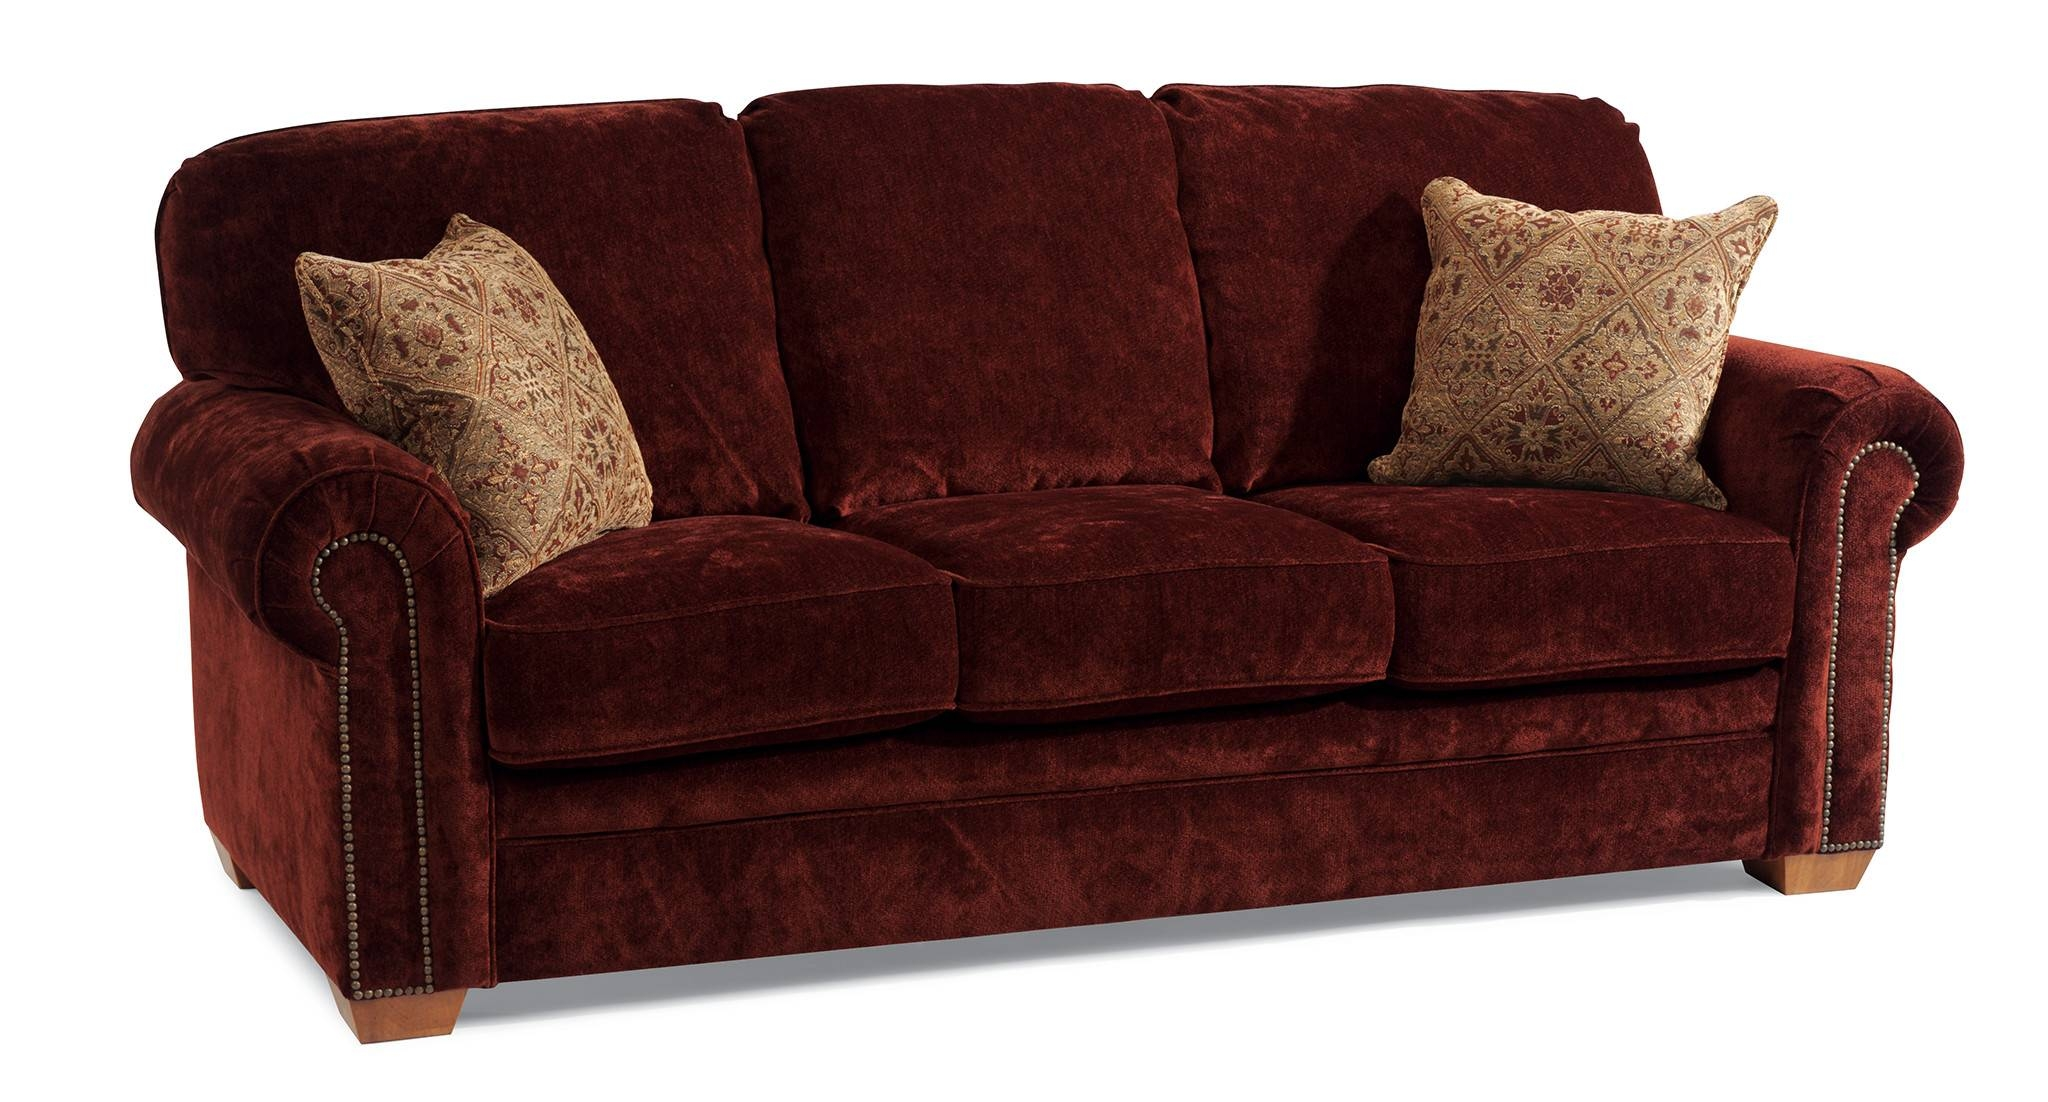 Chai Microsuede Sofa Bed 68 With Chai Microsuede Sofa Bed intended for Chai Microsuede Sofa Beds (Image 7 of 15)